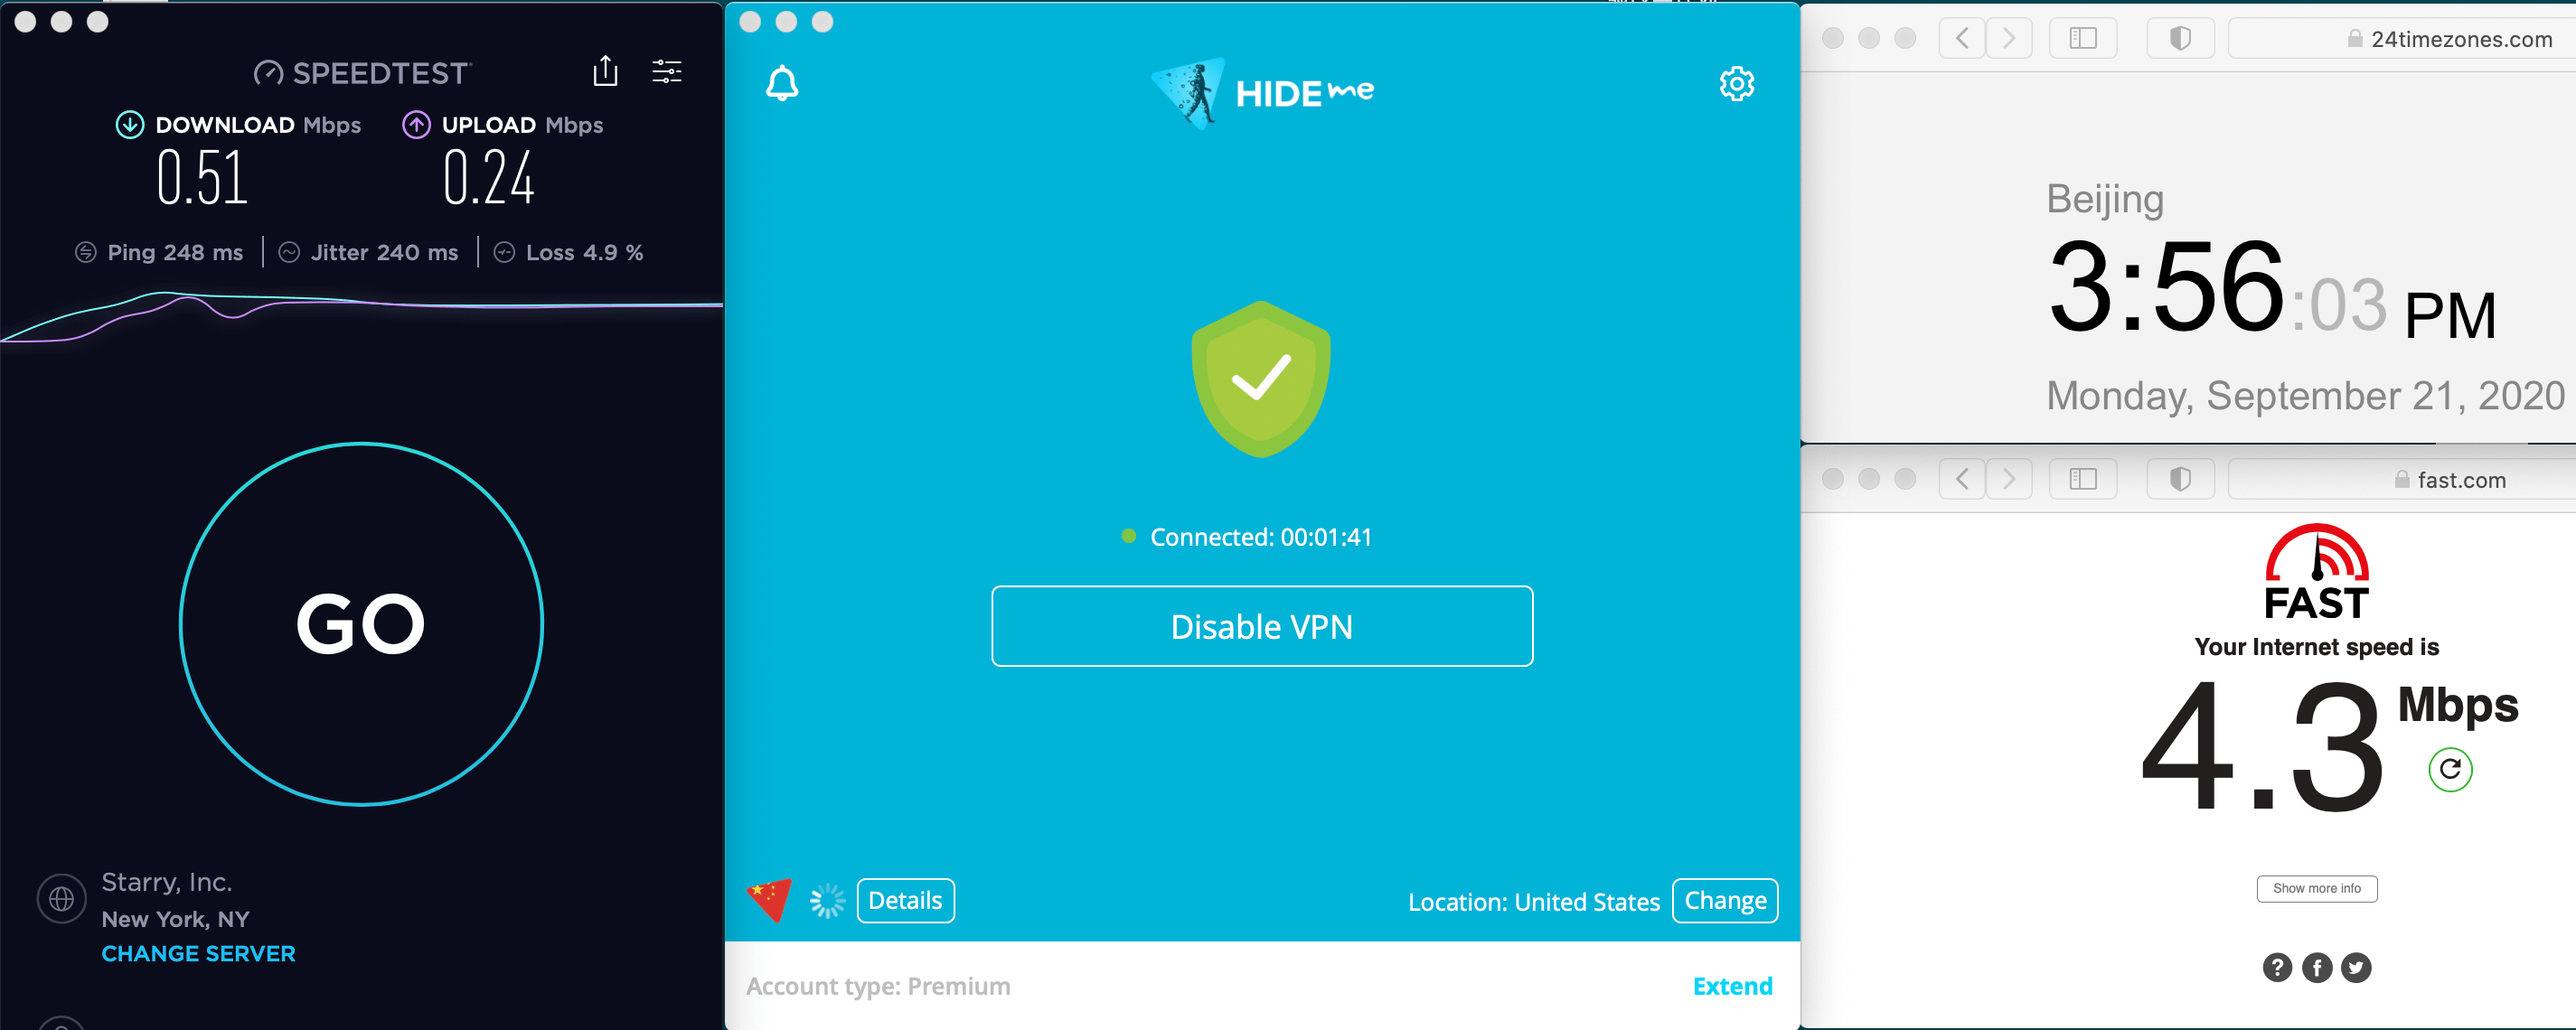 Macbook Hideme VPN Auto Streaming USA For Disney+ 中国VPN 翻墙 科学上网 速度测试 2020-09-21 at 15.56.22